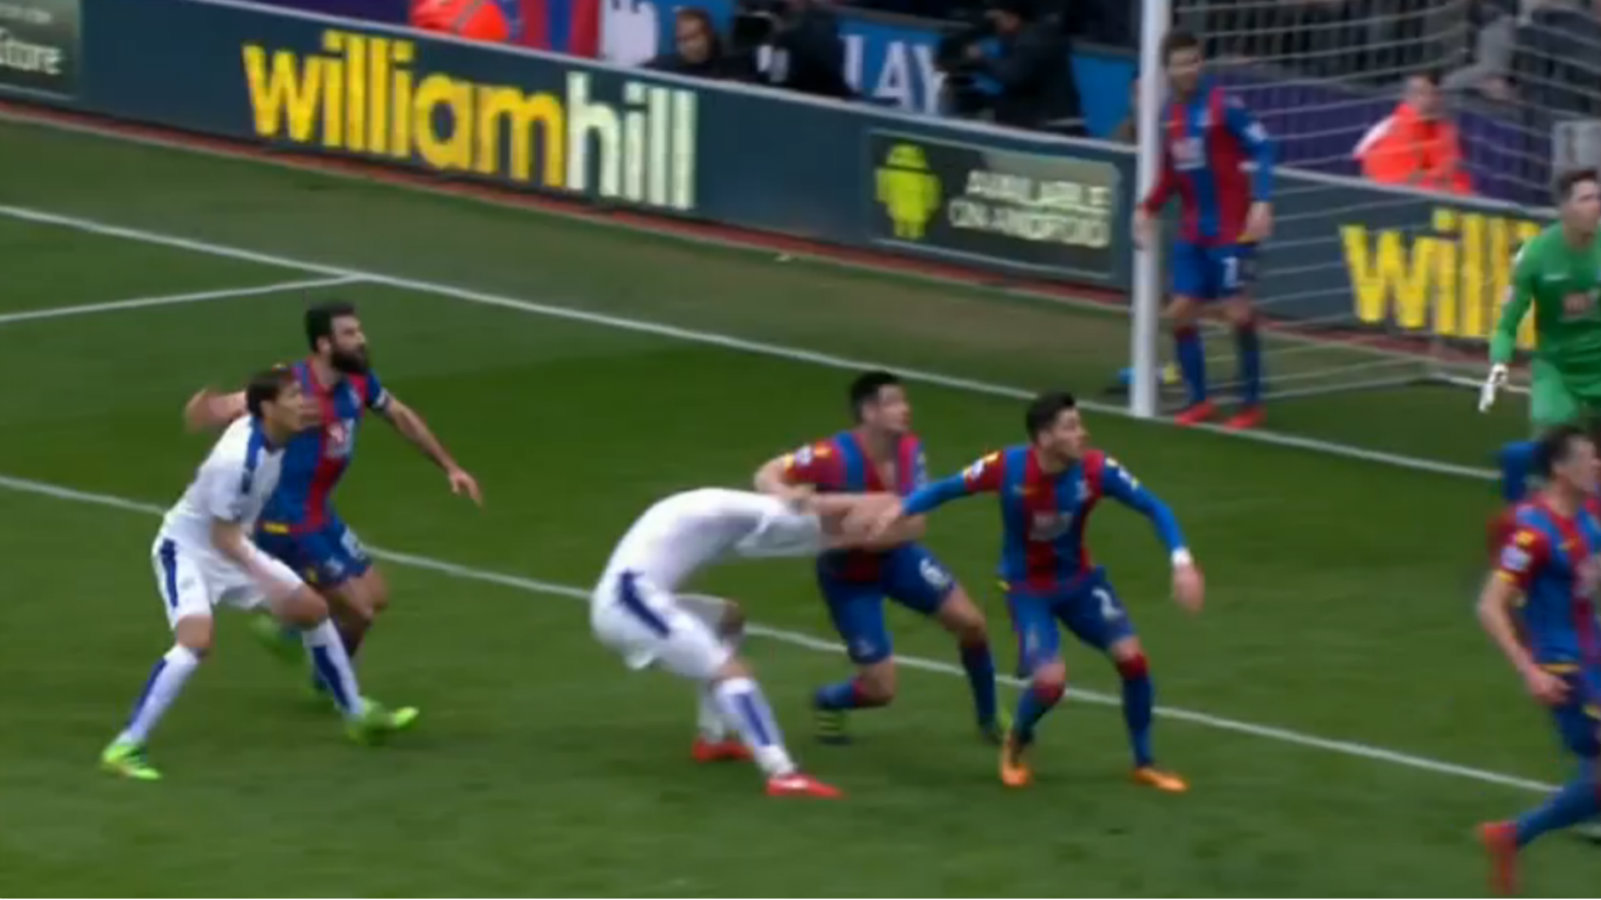 Crystal Palace defender rips Leicester City player's shirt clean off during game